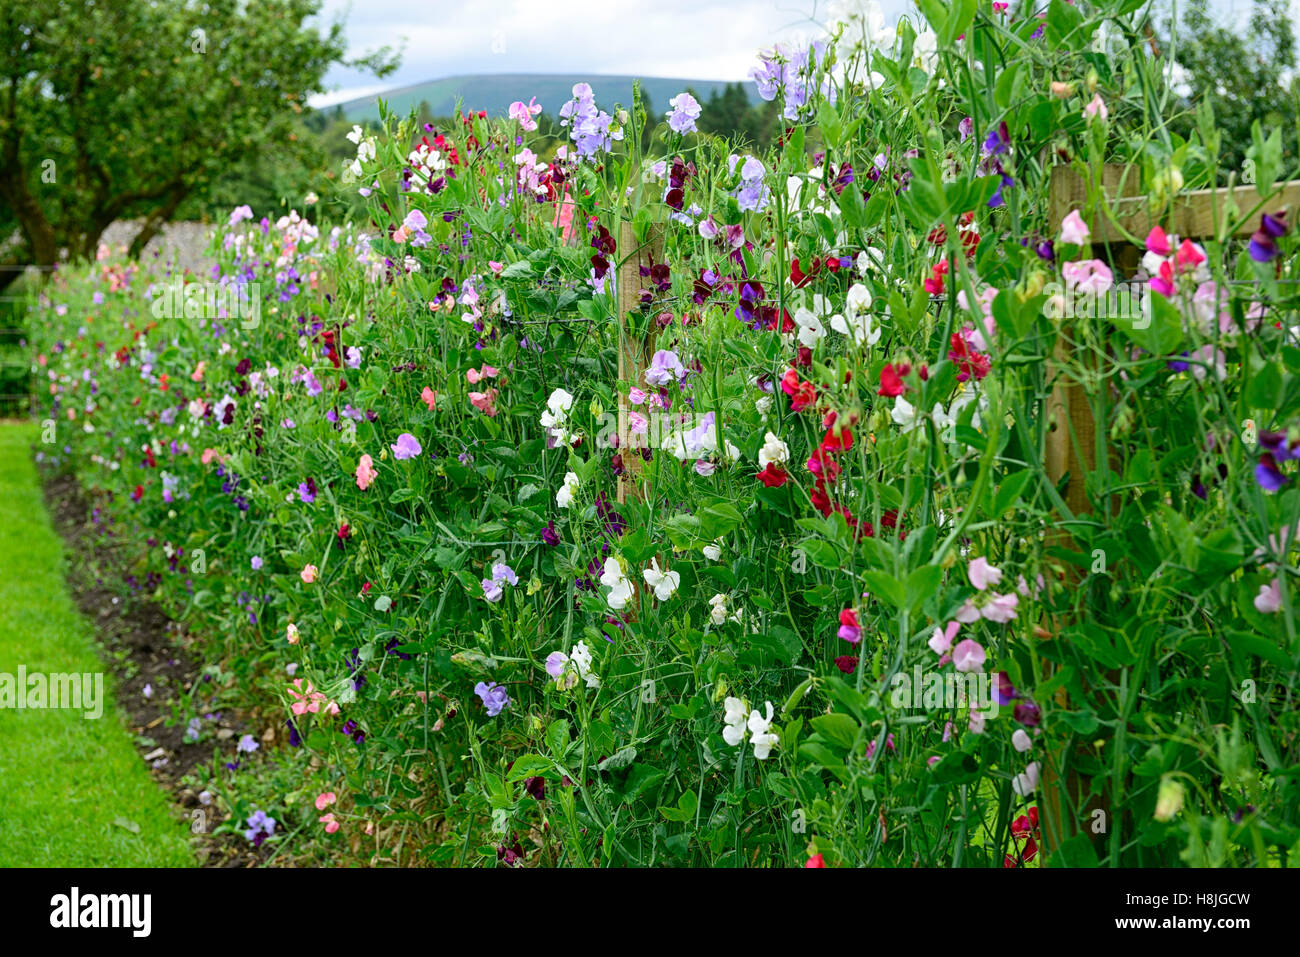 Lathyrus Sweet Peas Pea Grow Growing Up Fence Fencing